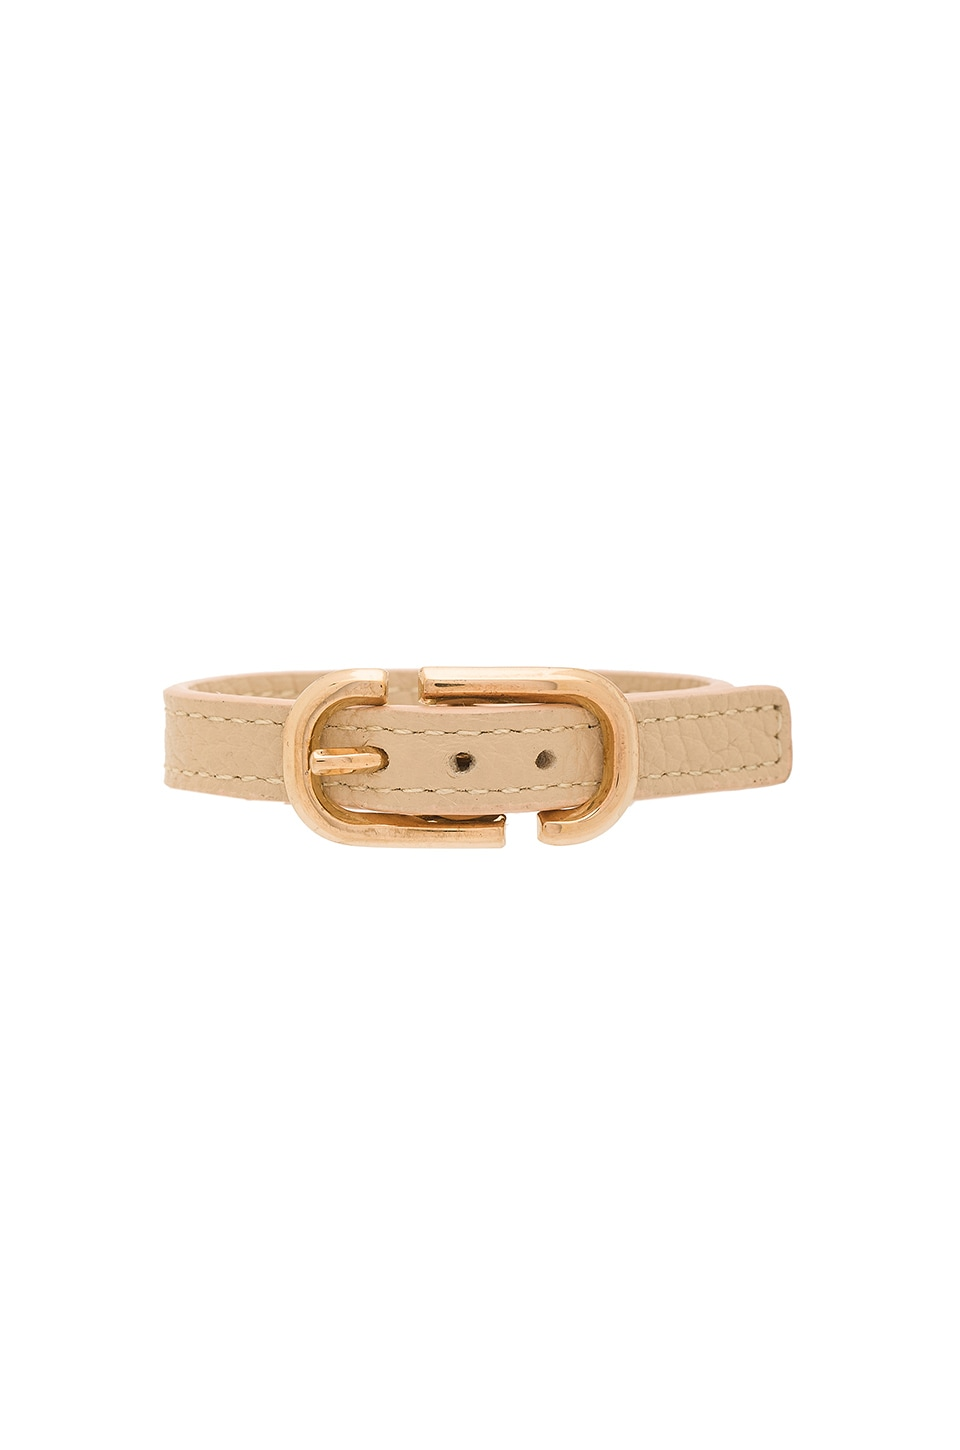 Icon Buckle Leather Bracelet by Marc Jacobs